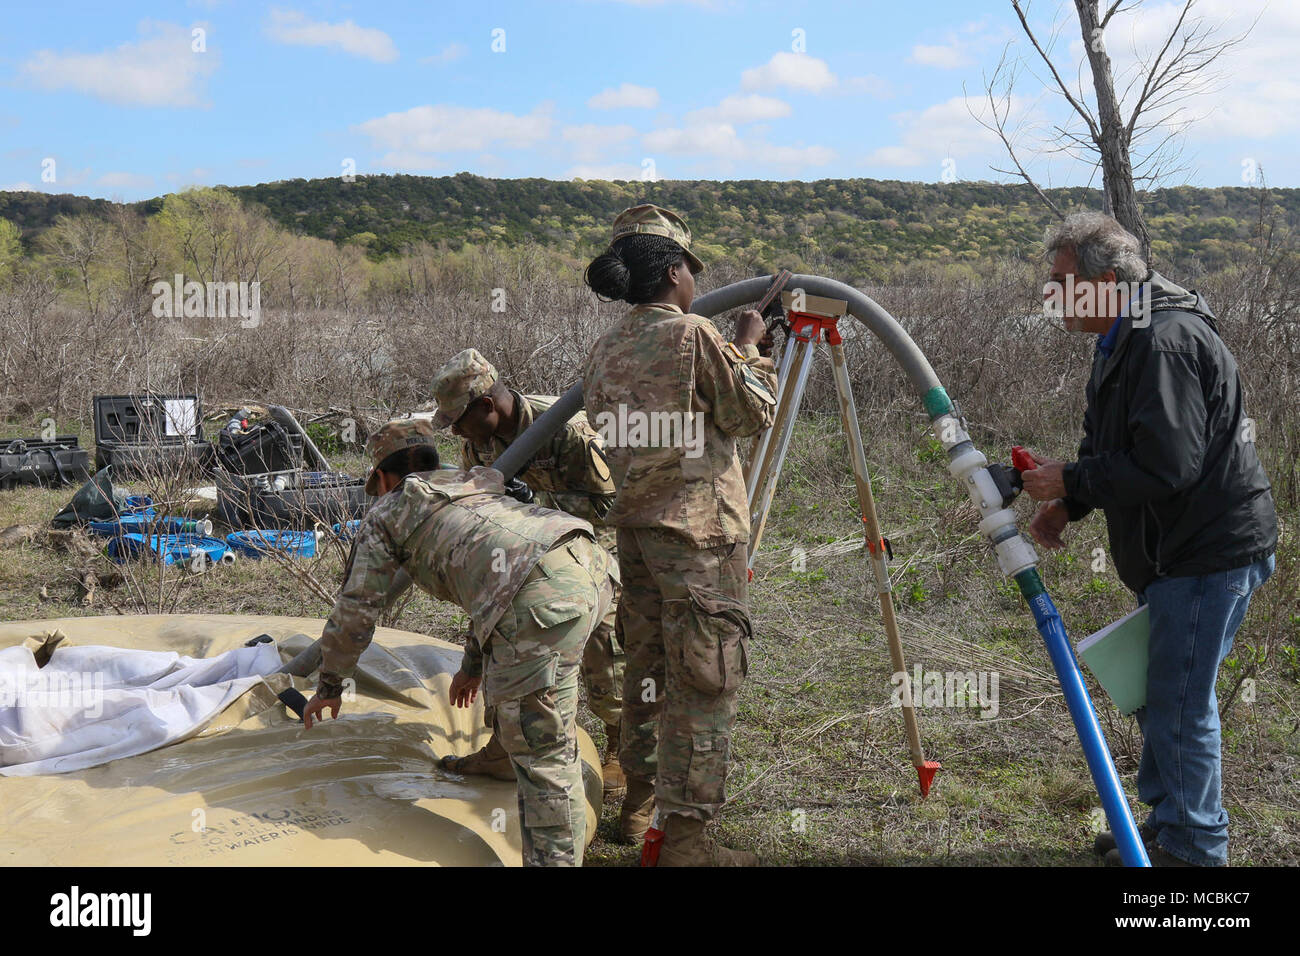 Soldiers from 289th Quartermaster Company (289th QM Co.), 553D Combat Sustainment Support Battalion, 1st Cavalry Division Sustainment Brigade, set-up the Tactical Water Purification System (TWPS) March 22 as part of an exercise to validate theirs processes prior to going to Indiana to support the Defense CBRNE (Chemical, Biological, Radiological, Nuclear, and High-Yield Explosive) Reactionary Force (DCRF) mission in June. - Stock Image